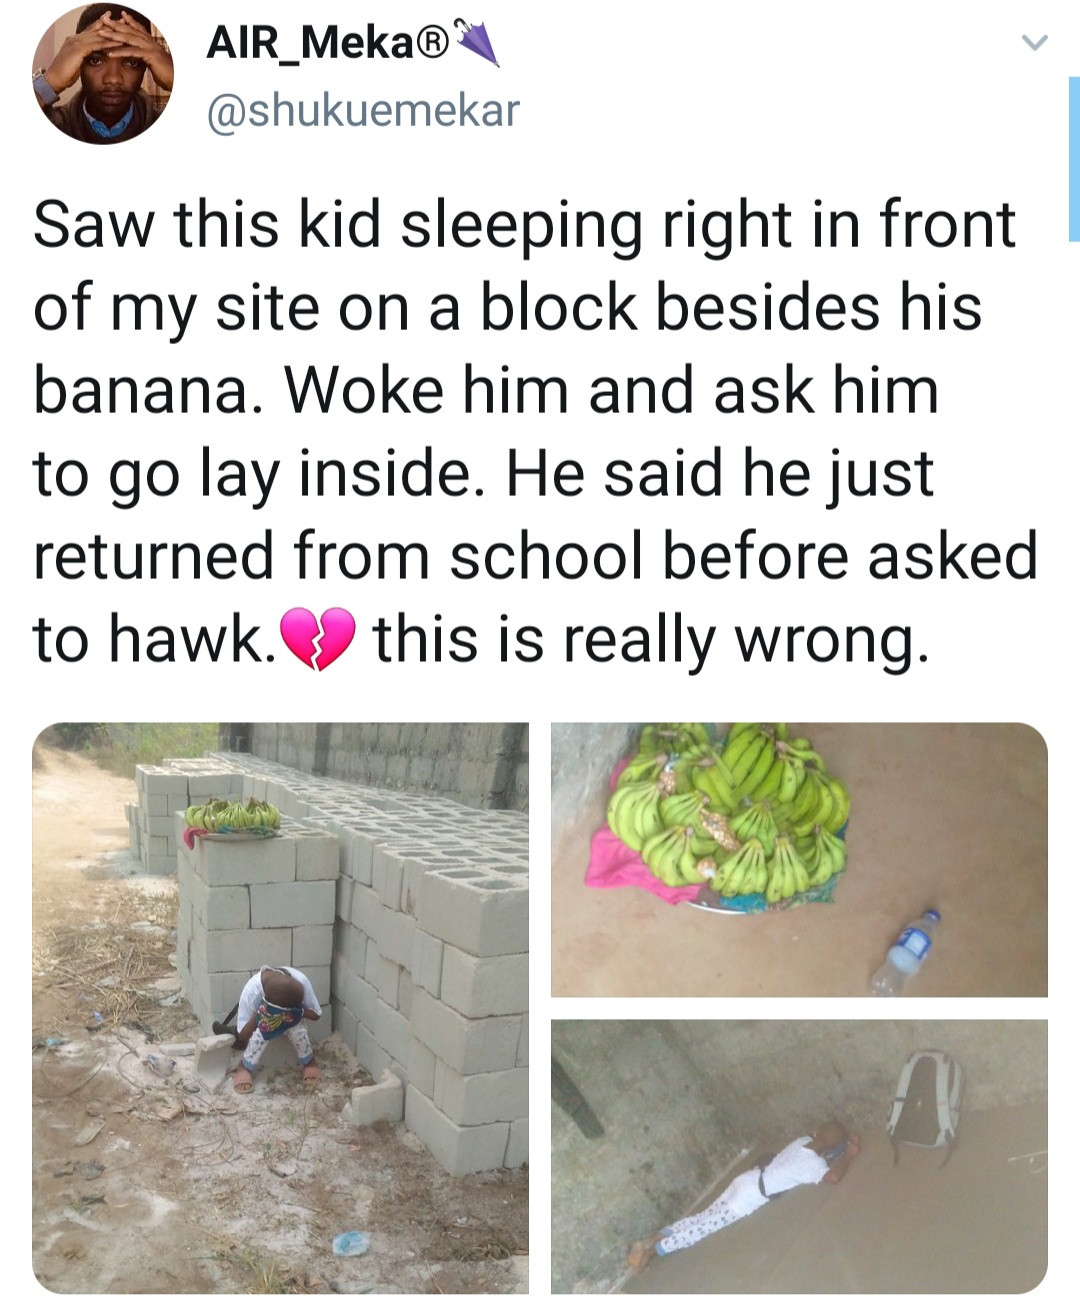 Child found sleeping in the streets after being made to hawk bananas upon his return from school